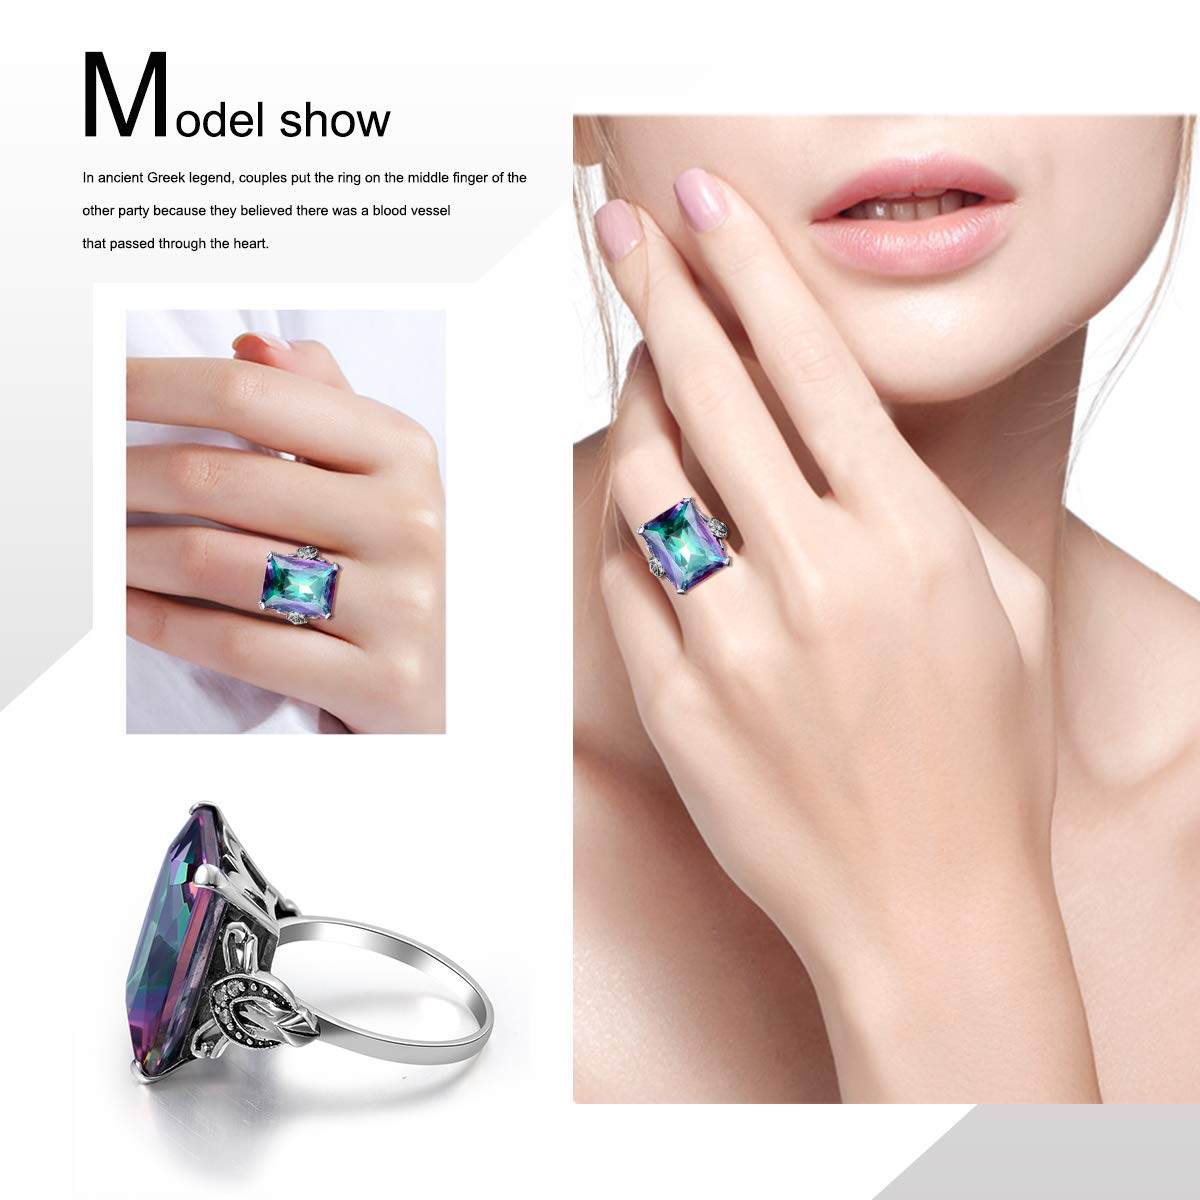 Rings Responsible Vintage Silver Plated Large White Red Green Blue Round Simulated Gemstone Rings For Women Costume Jewelry Rings Size 6 7 8 9